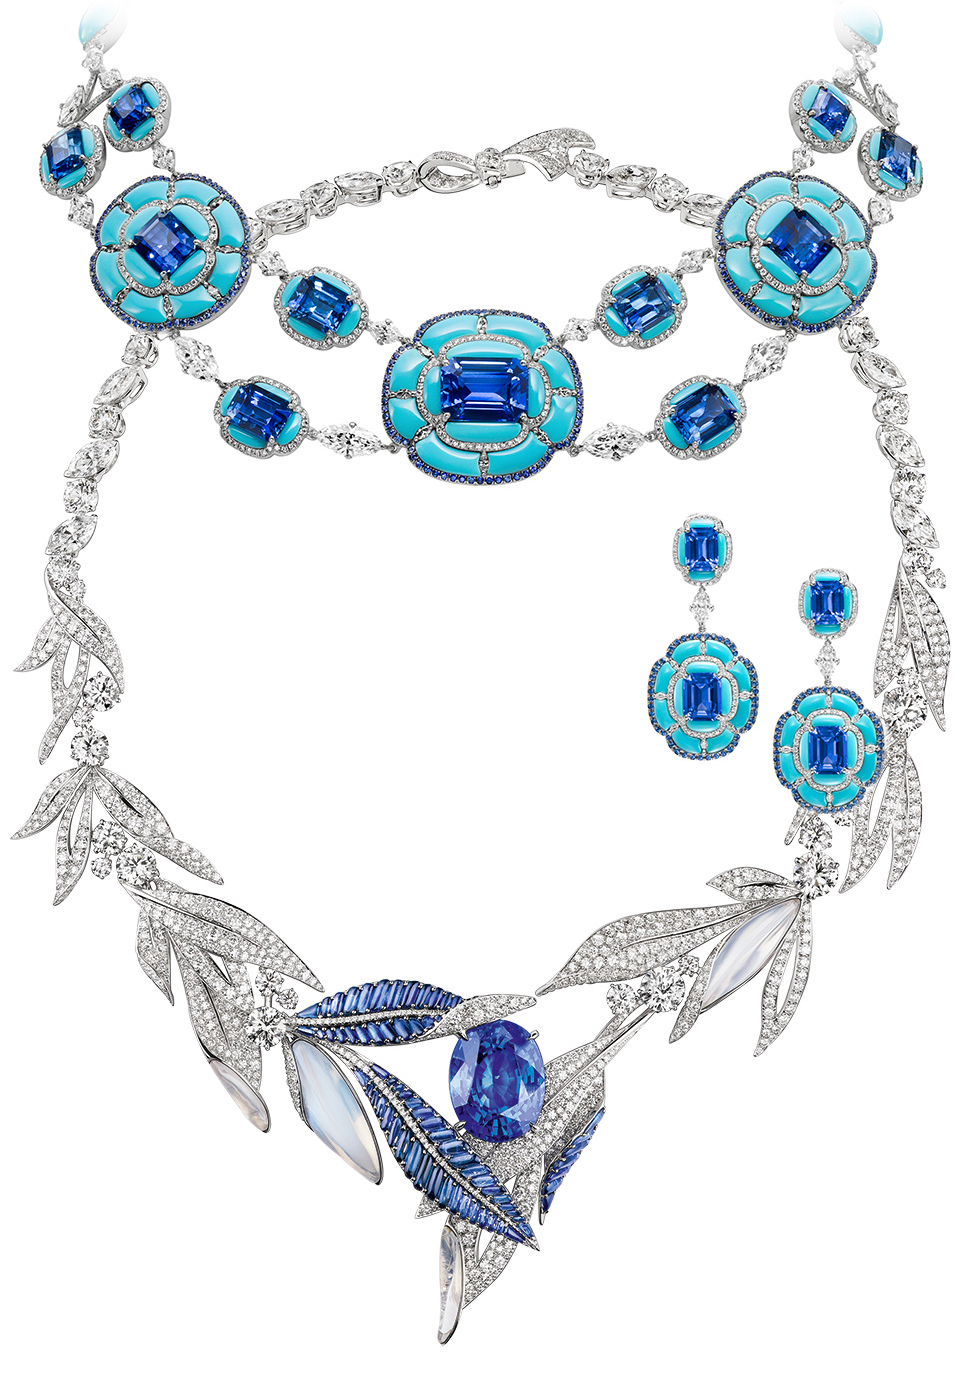 Boghossian necklace and earrings with sapphires and turquoise on the top and Chaumet necklace with an oval 36.34 cts sapphire on the bottom